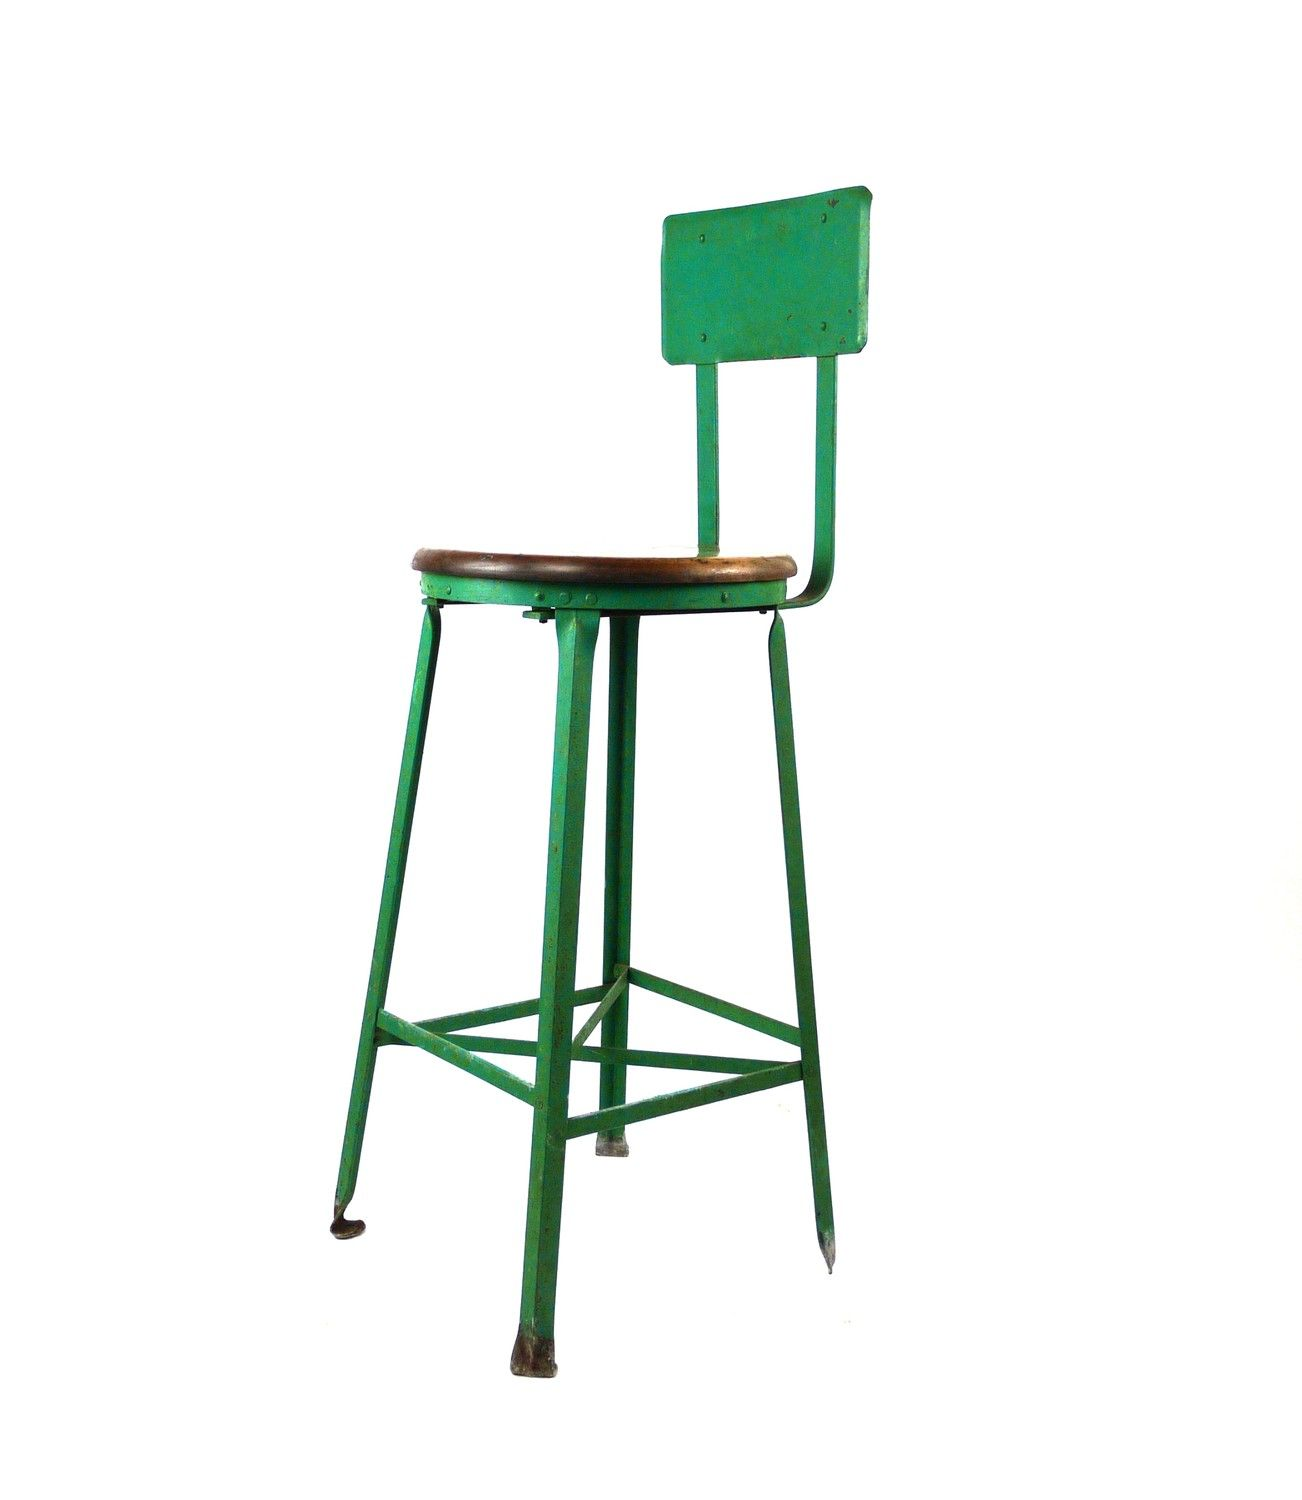 Cool Vintage Industrial Metal Atelier Drafting Stool Kitchen Machost Co Dining Chair Design Ideas Machostcouk